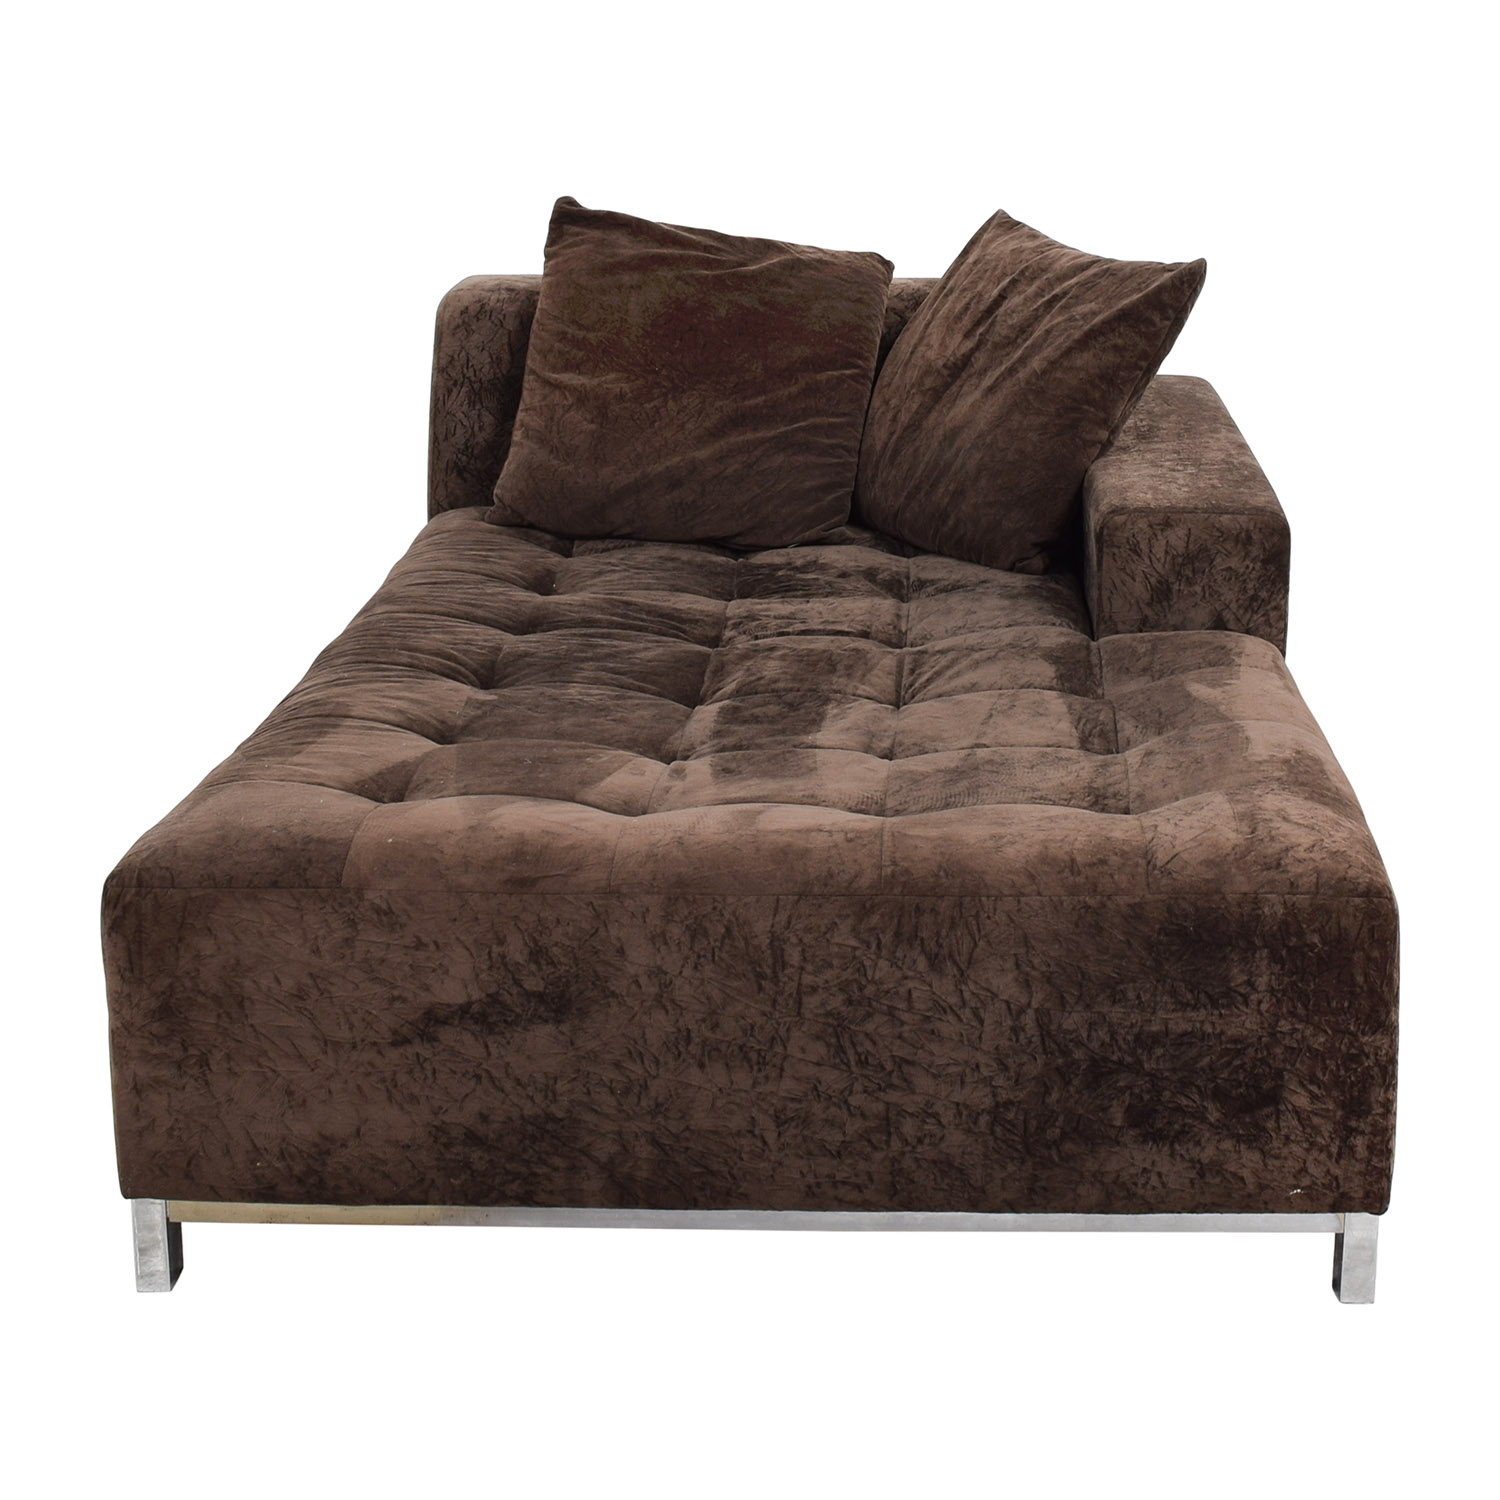 id pad leather cassina seating brown furniture chaise master in for longue headroll pampas longues f hair